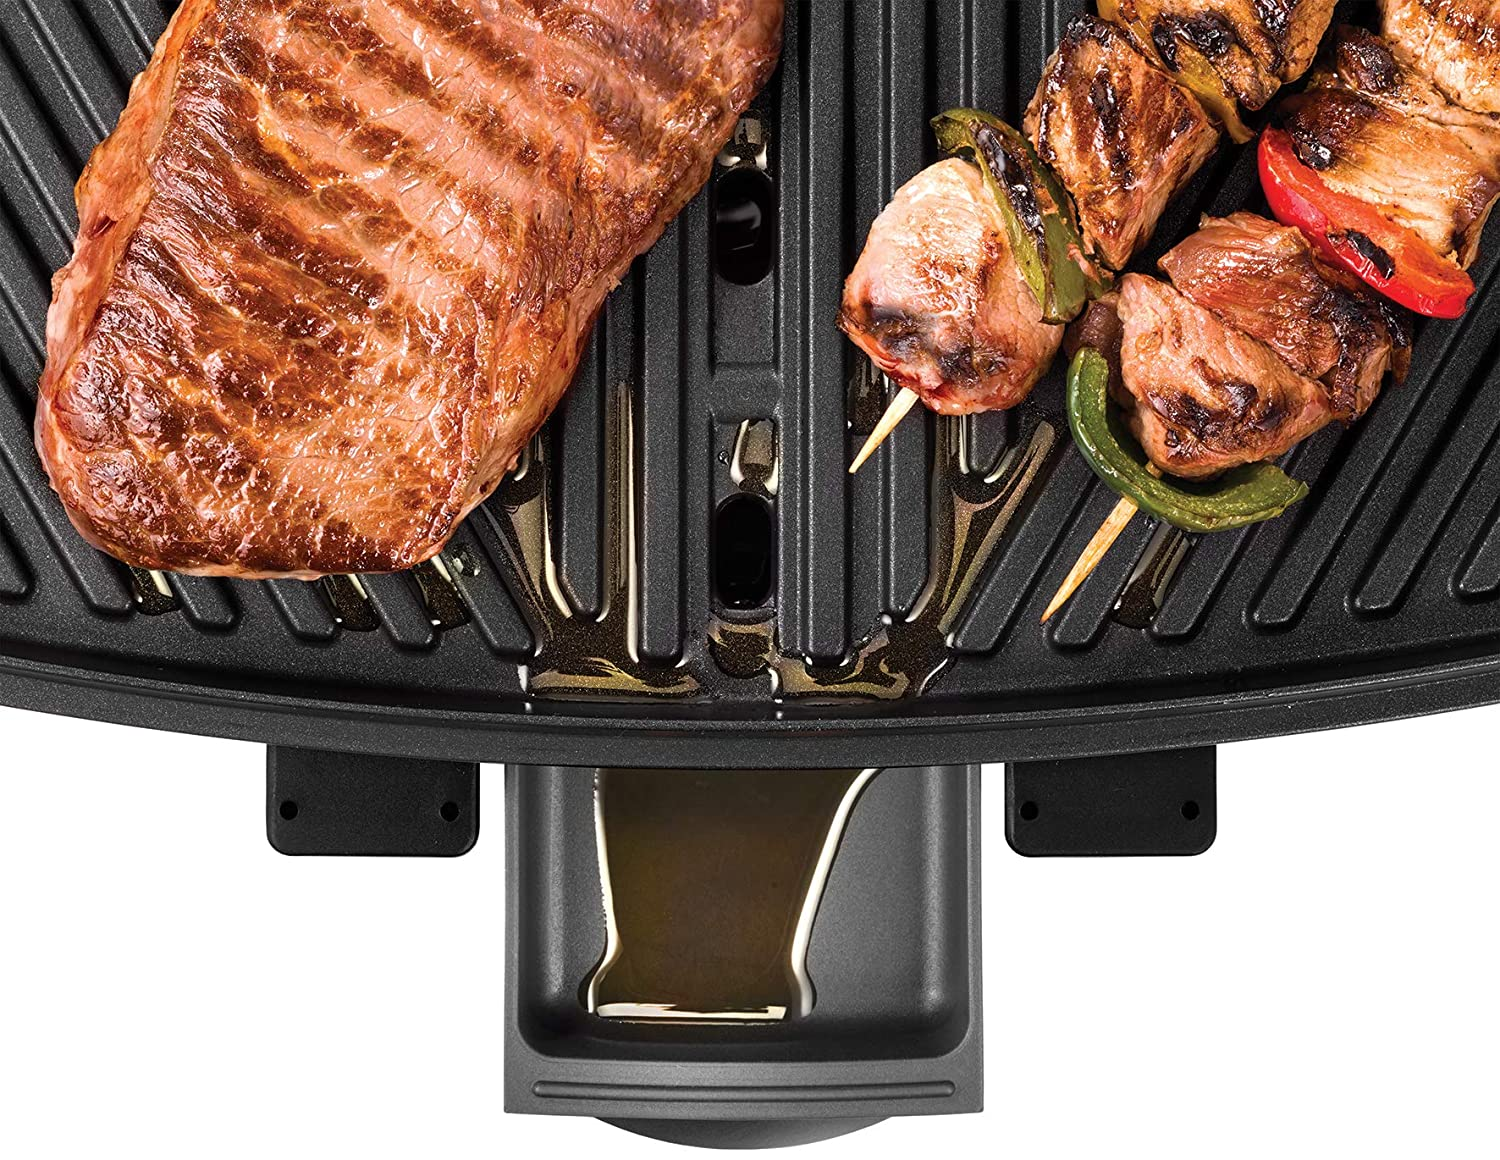 Unold Elektrogrill Test : Unold 58580 barbecue power grill elektrogrill 2000 w große